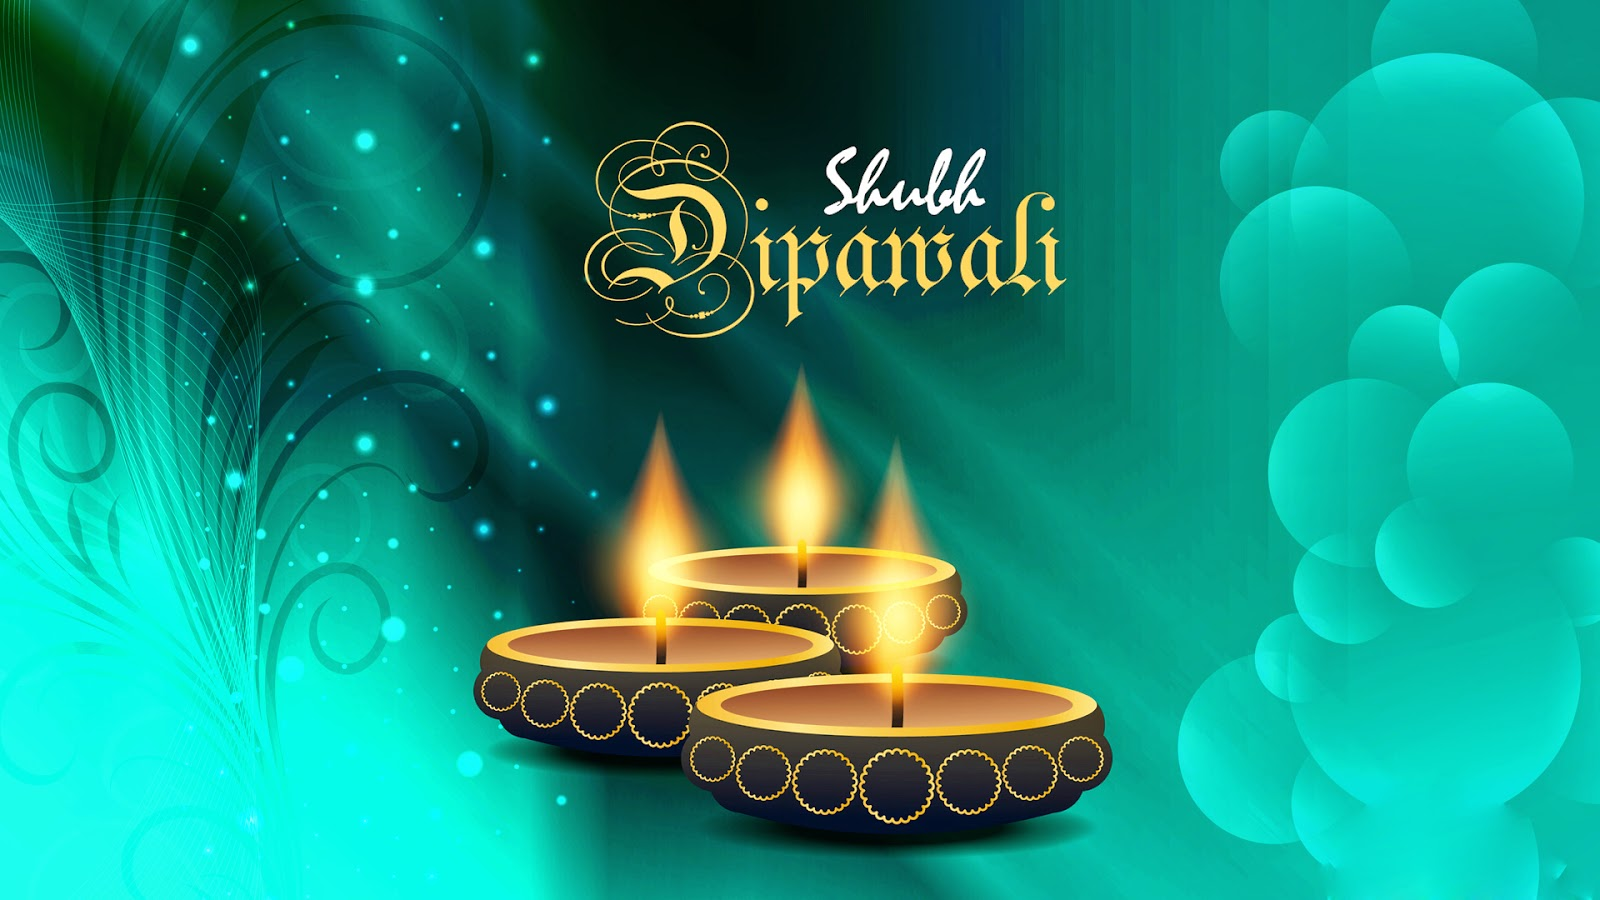 Happy Diwali Quotes 2019 In Hindi English